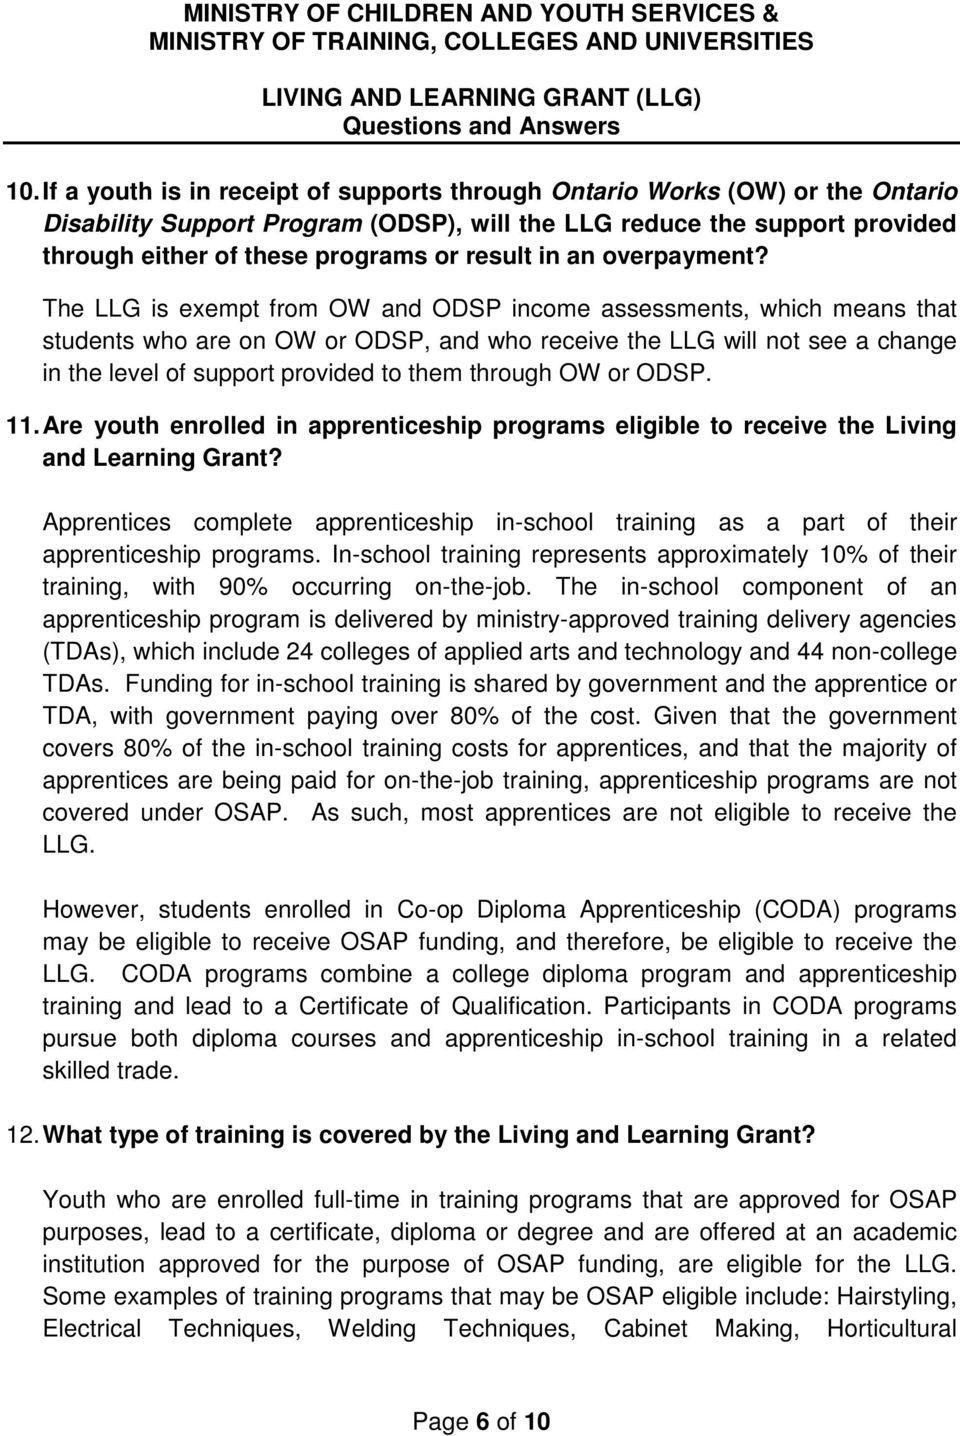 The LLG is exempt from OW and ODSP income assessments, which means that students who are on OW or ODSP, and who receive the LLG will not see a change in the level of support provided to them through